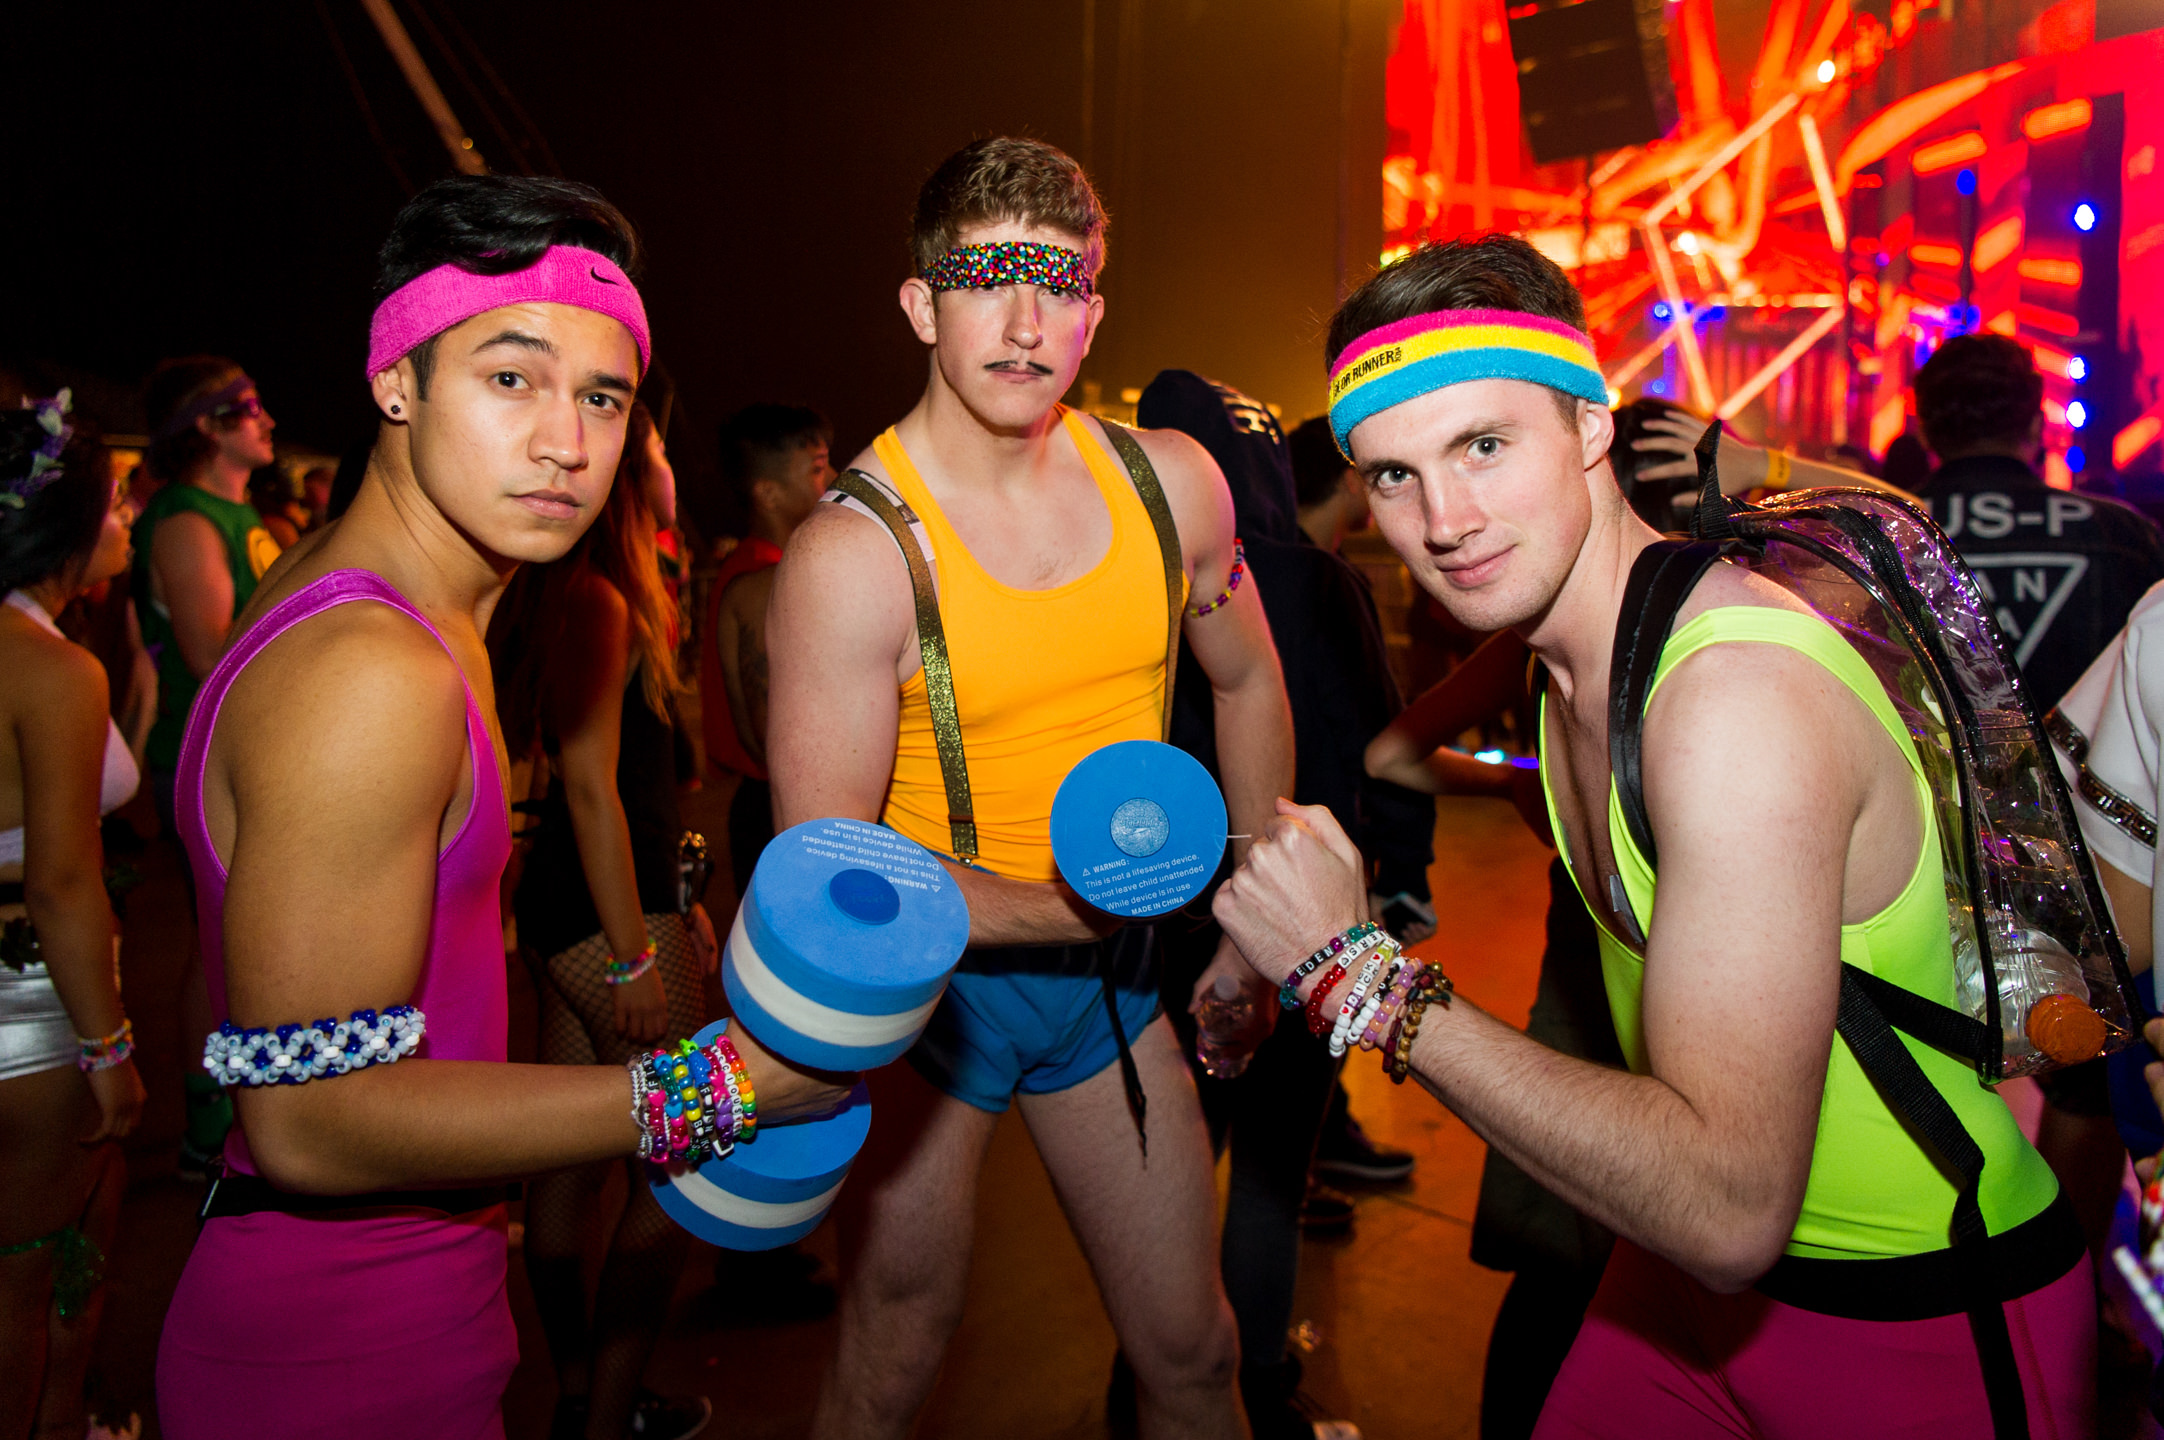 Festival Raver Trio Retro Runners Costume at USC Events FreakNight at the Tacoma Dome 2016